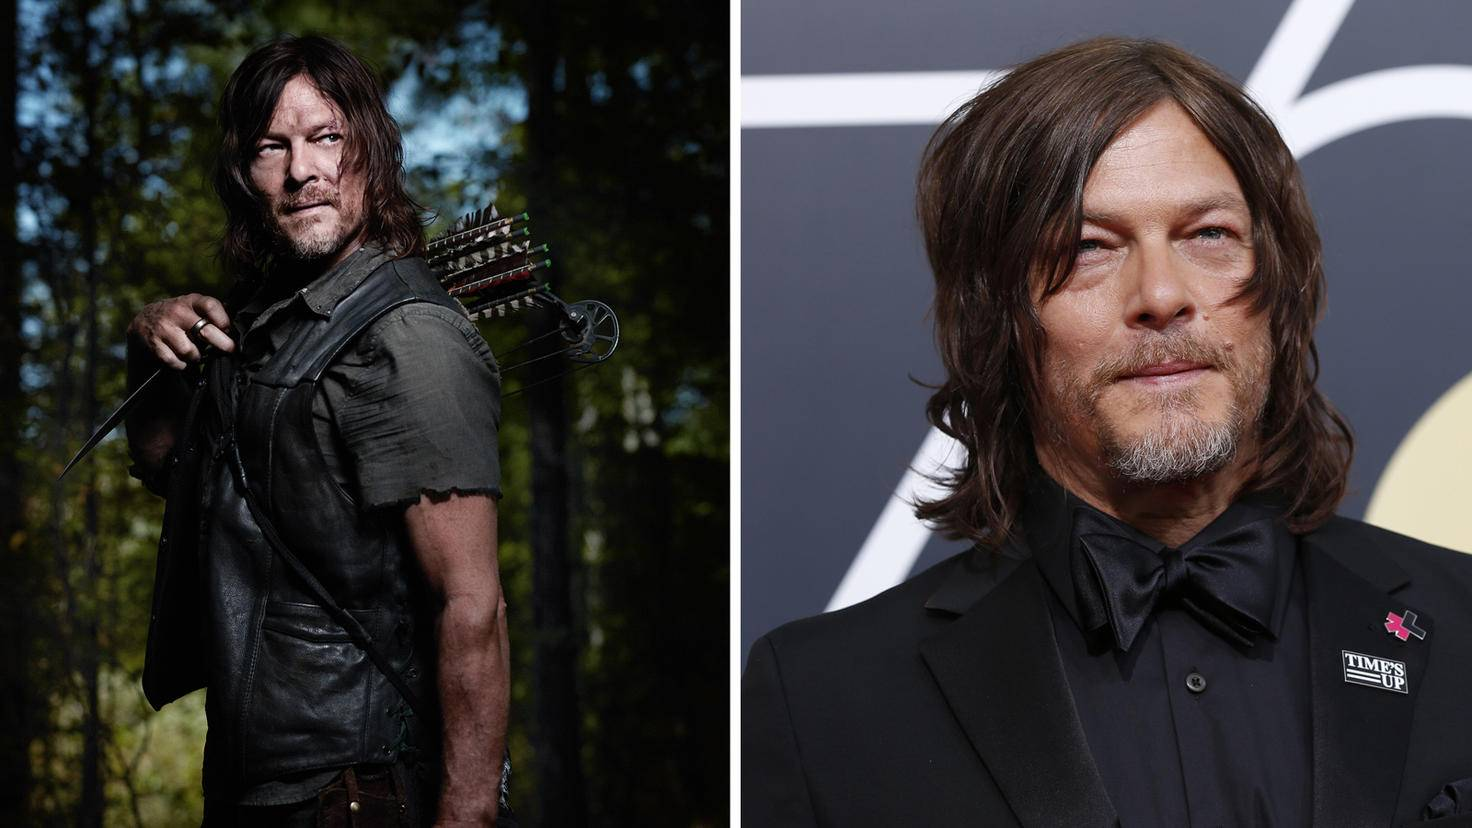 The Walking Dead-S09-Daryl-Michael Muller-AMC-Norman Reedus-Mario Anzuoni-Reuters-AdobeStock_187265297_Editorial_Use_Only